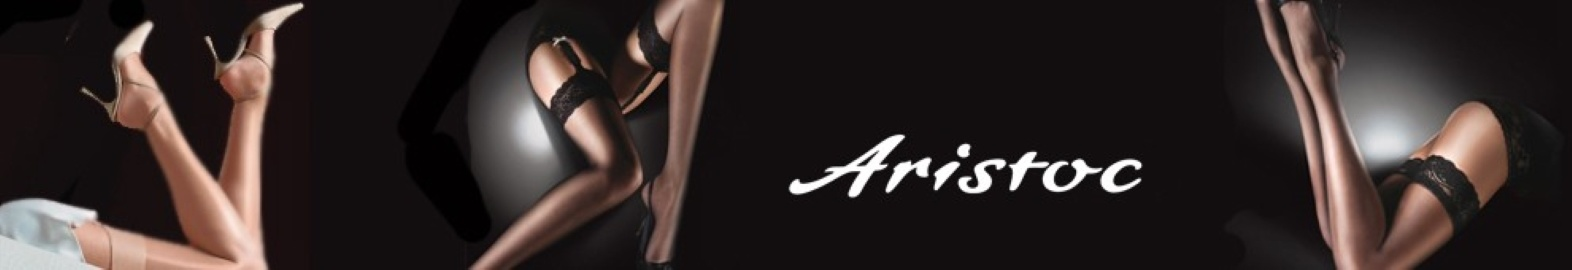 Aristoc collectie